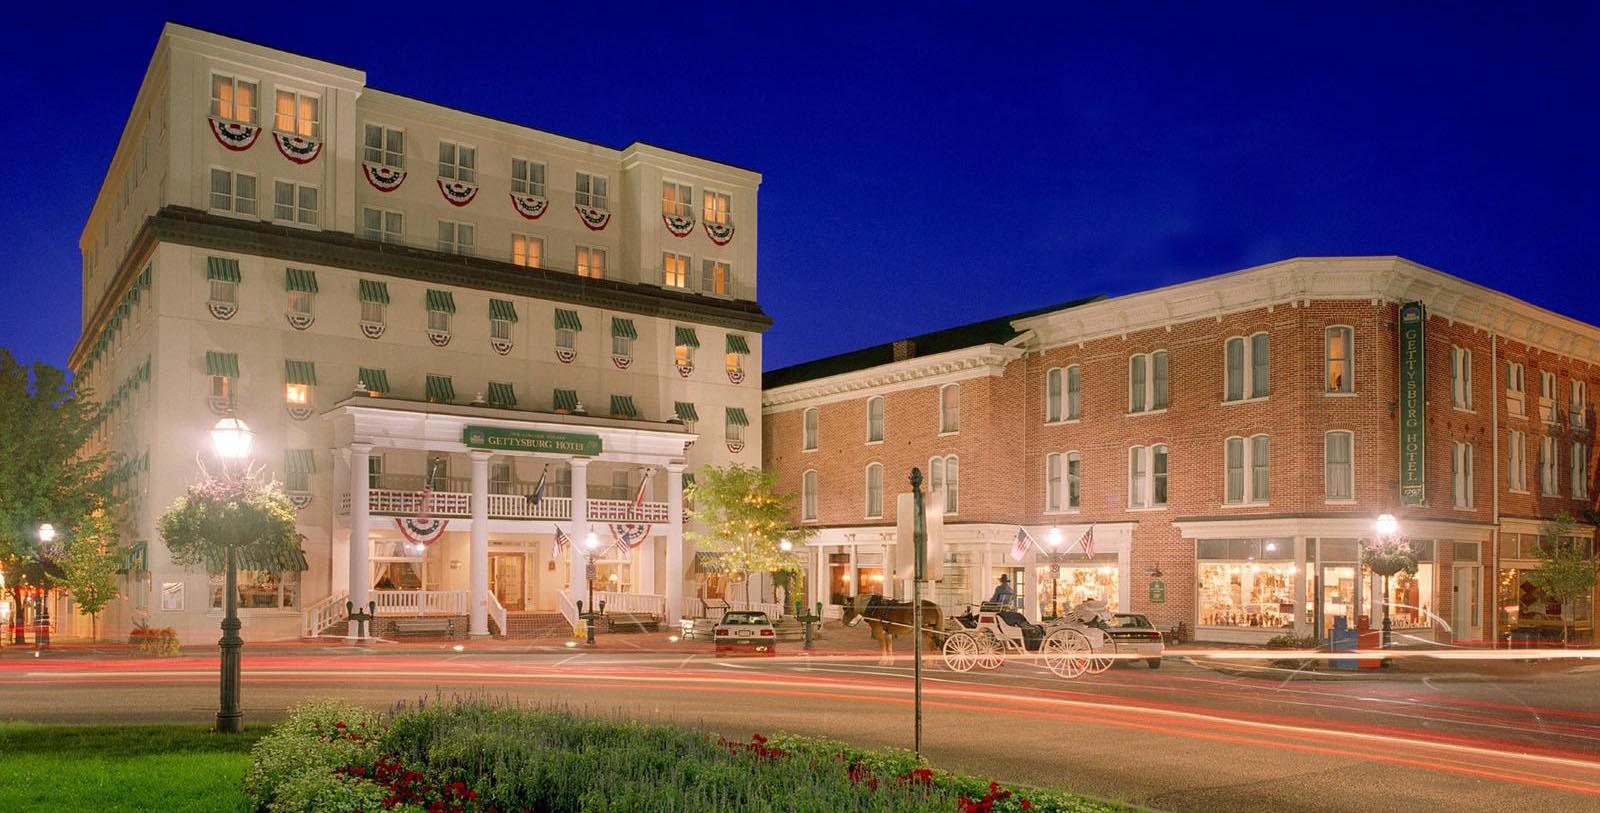 Image of hotel exterior at night Gettysburg Hotel, Est.1797, Member of Historic Hotels of America, in Gettysburg, Pennsylvania, Explore